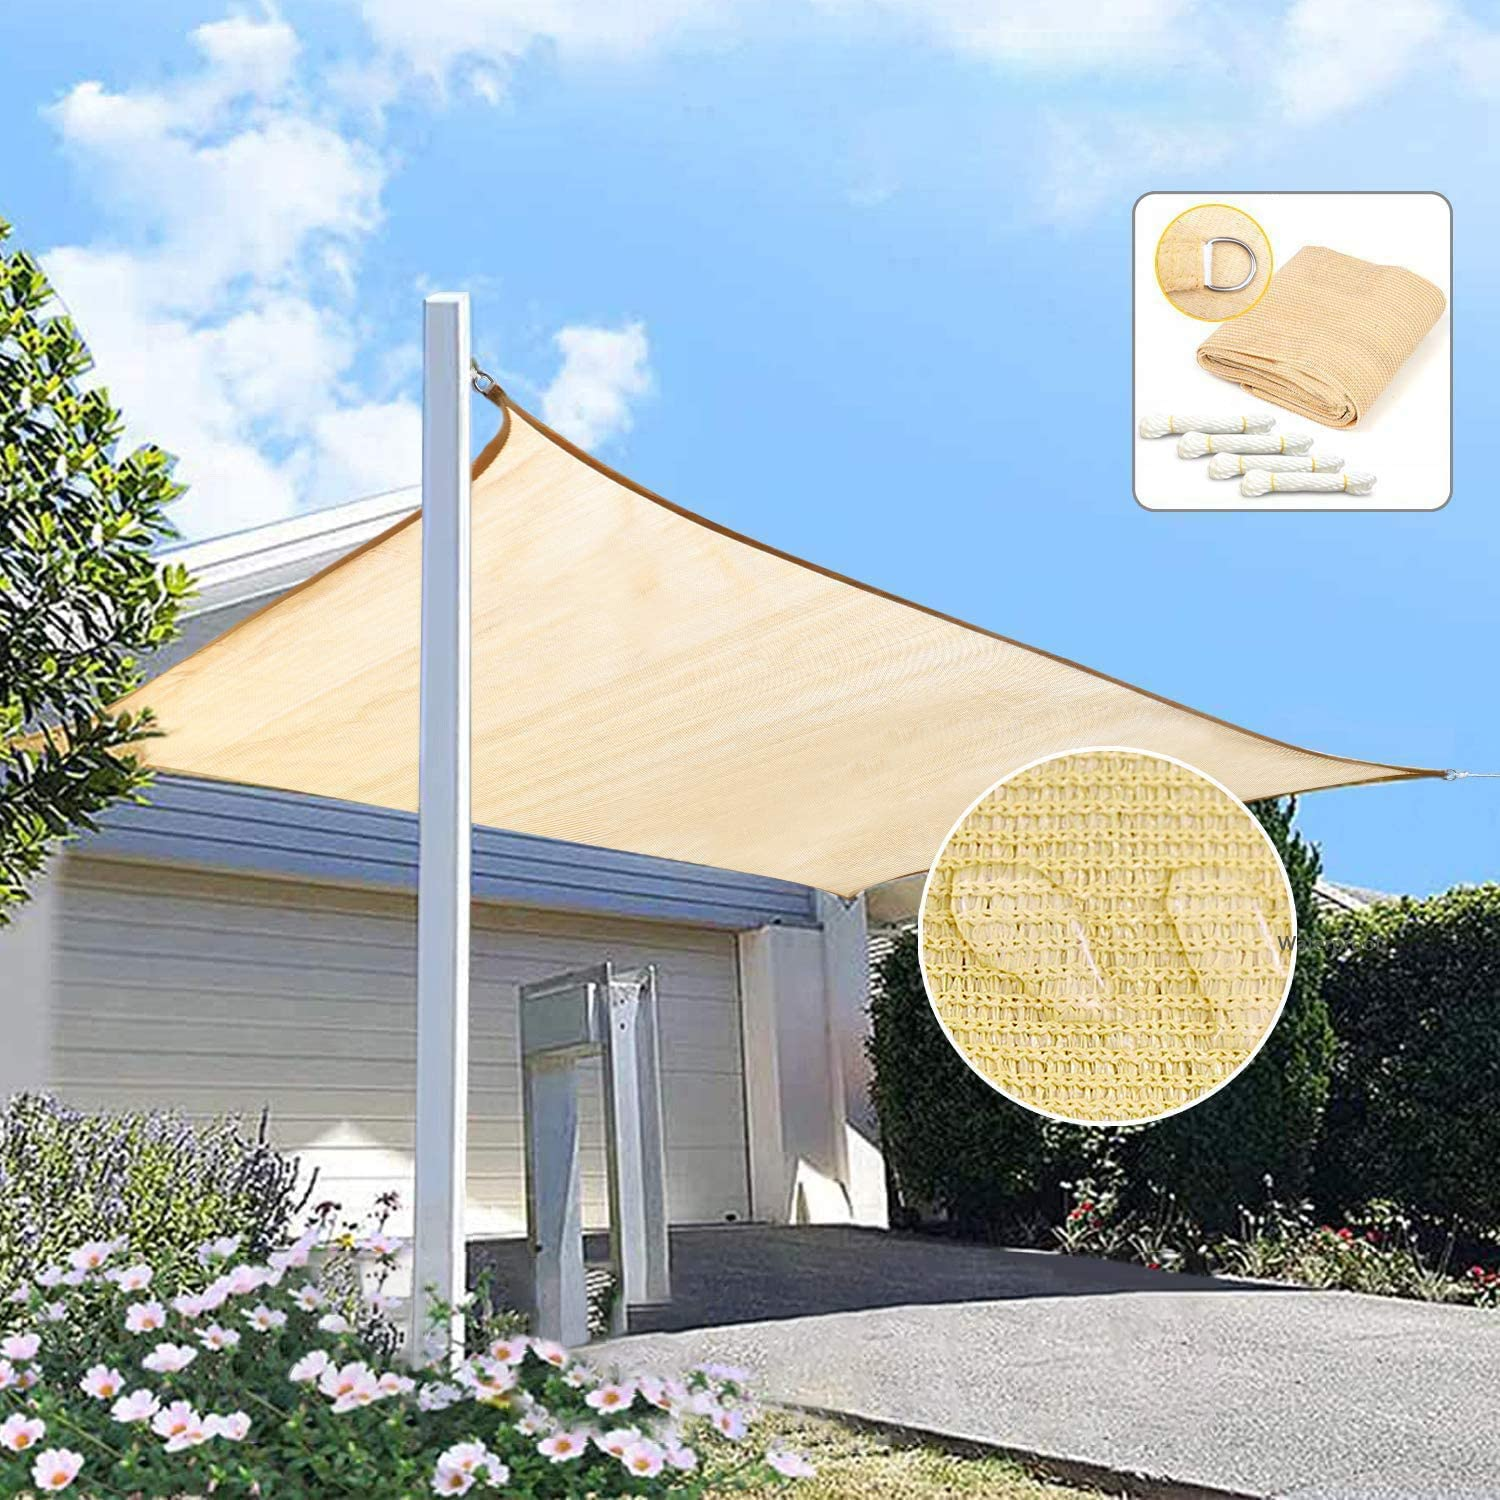 LadyRosian 16' x 16' Beige Sun Shade Sail, Square Windproof UV Block Sun Shade Canopy for Outdoor Patio, Garden, Backyard, Playground Outdoor Facility - Includes Rope (16' x 16', New Version)